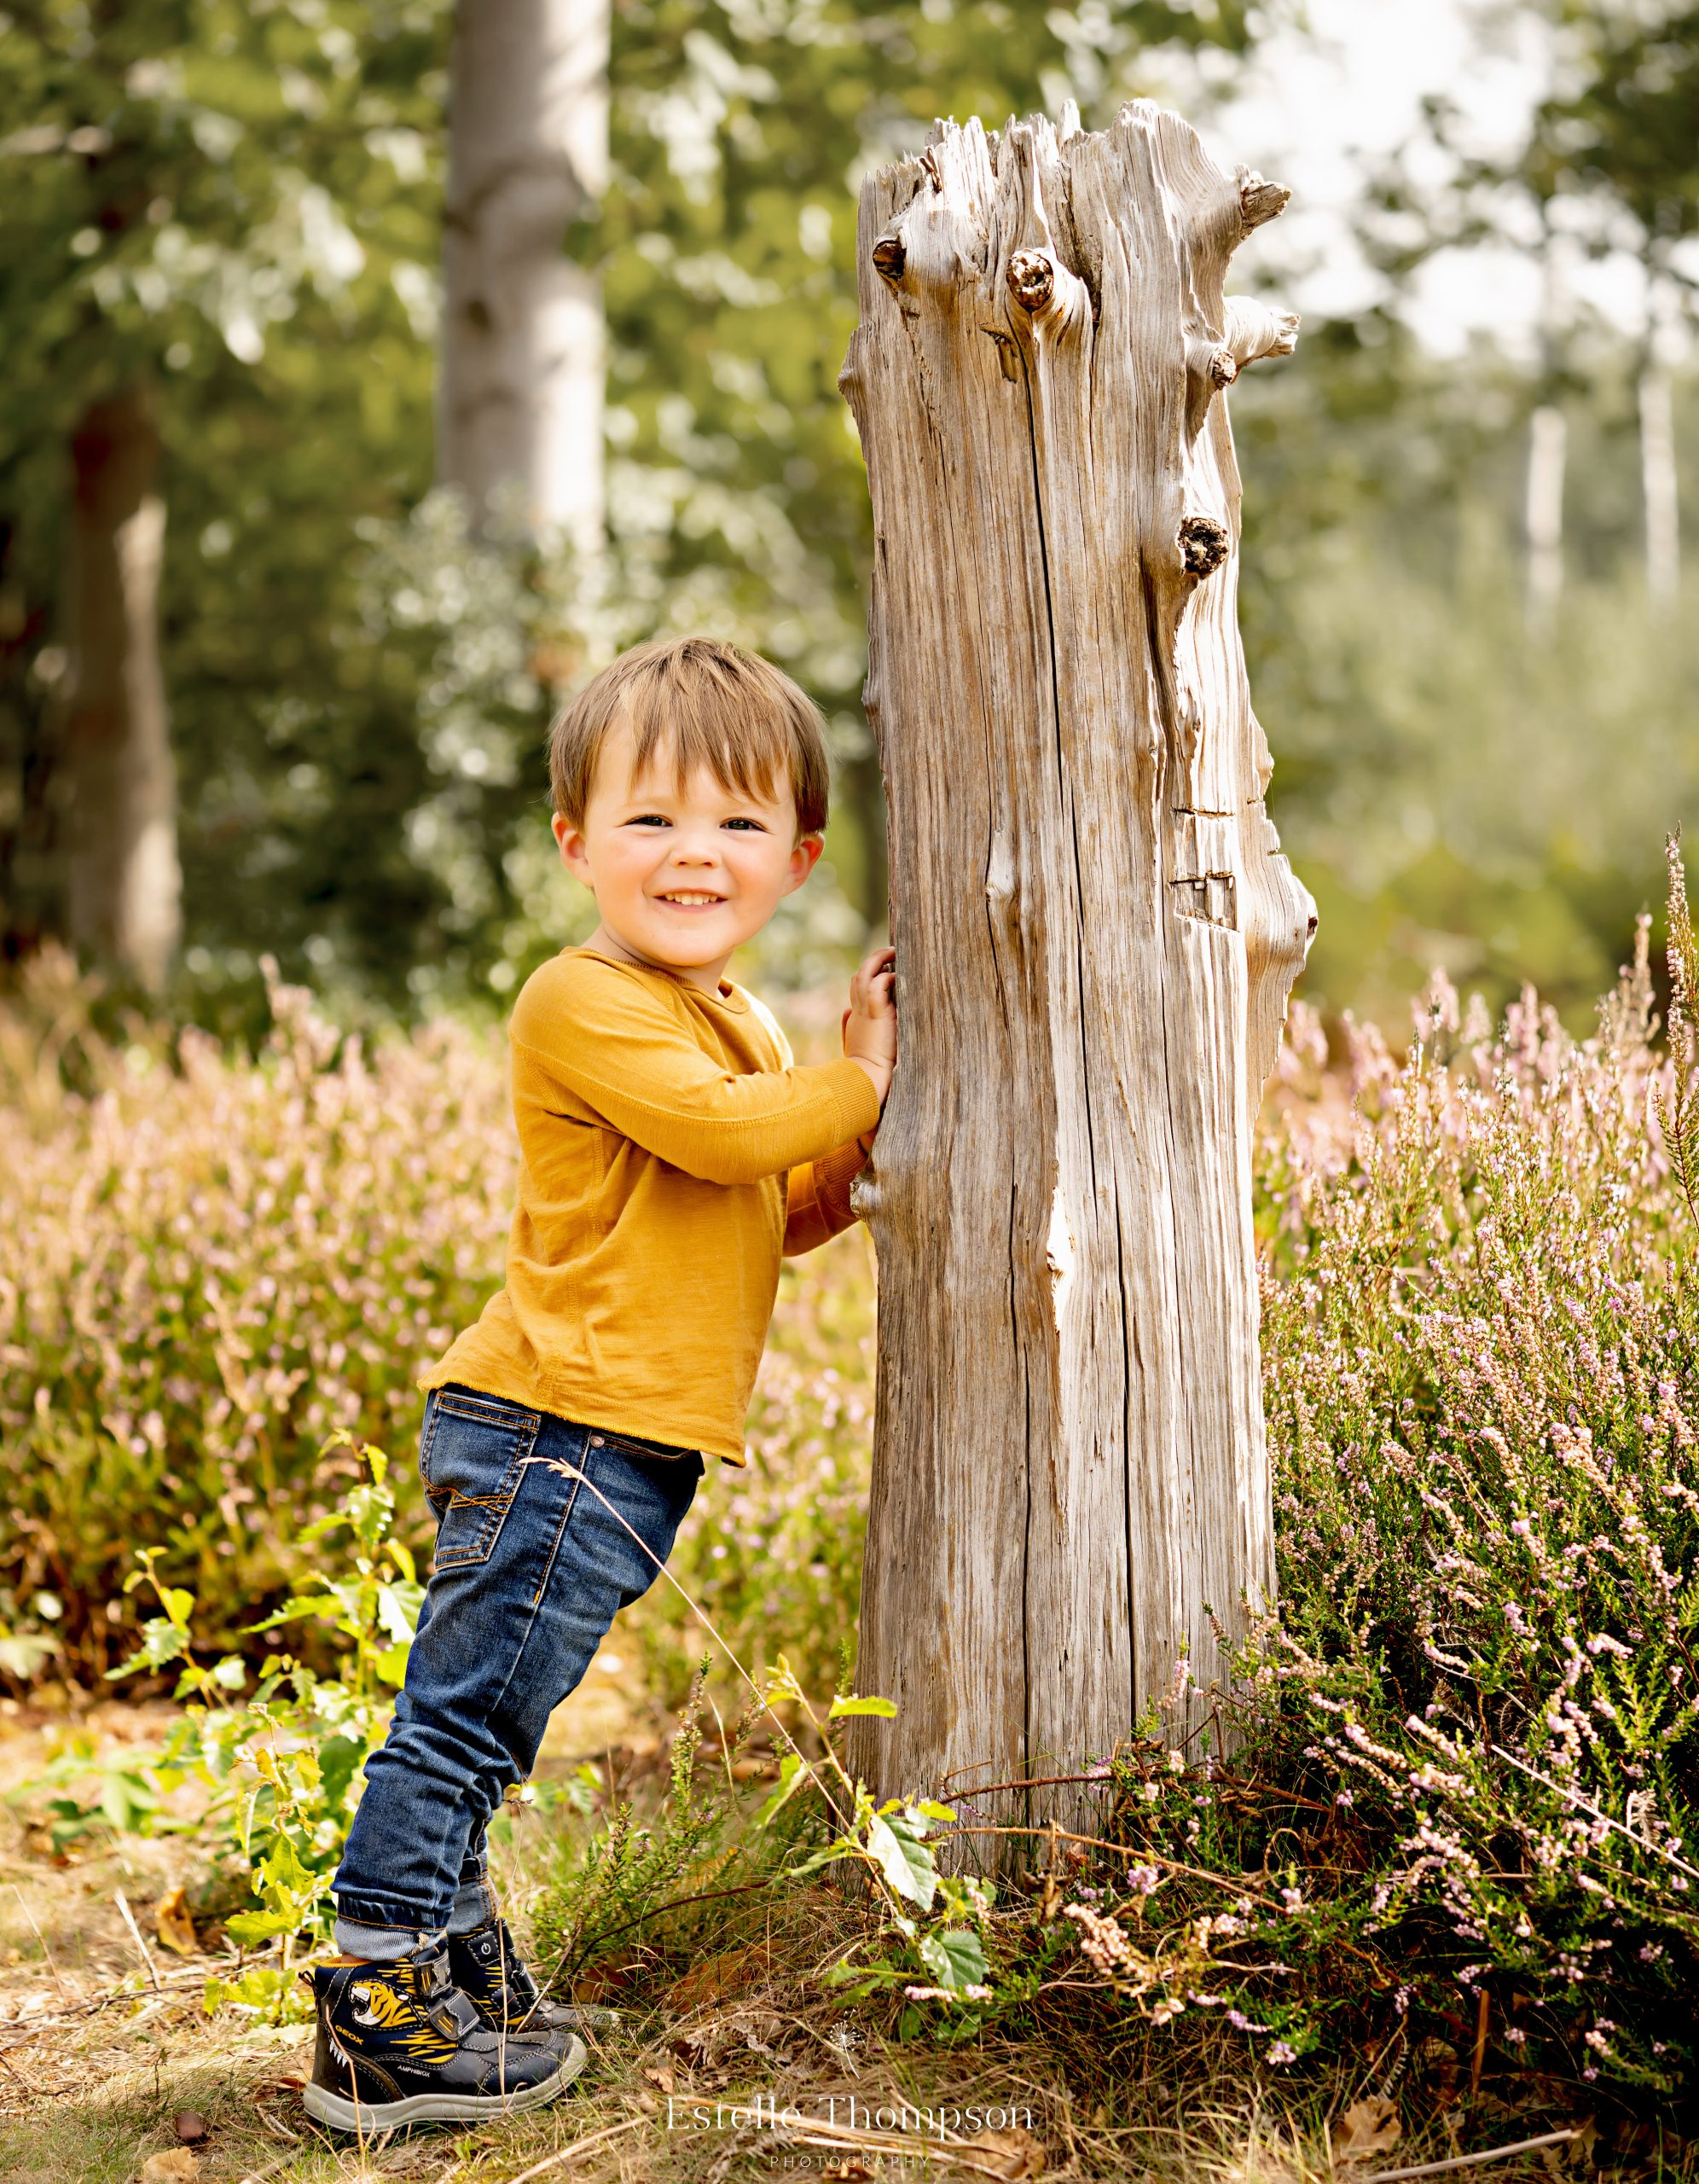 A young child leans against a tree in Sevenoaks for a family photoshoot in kent